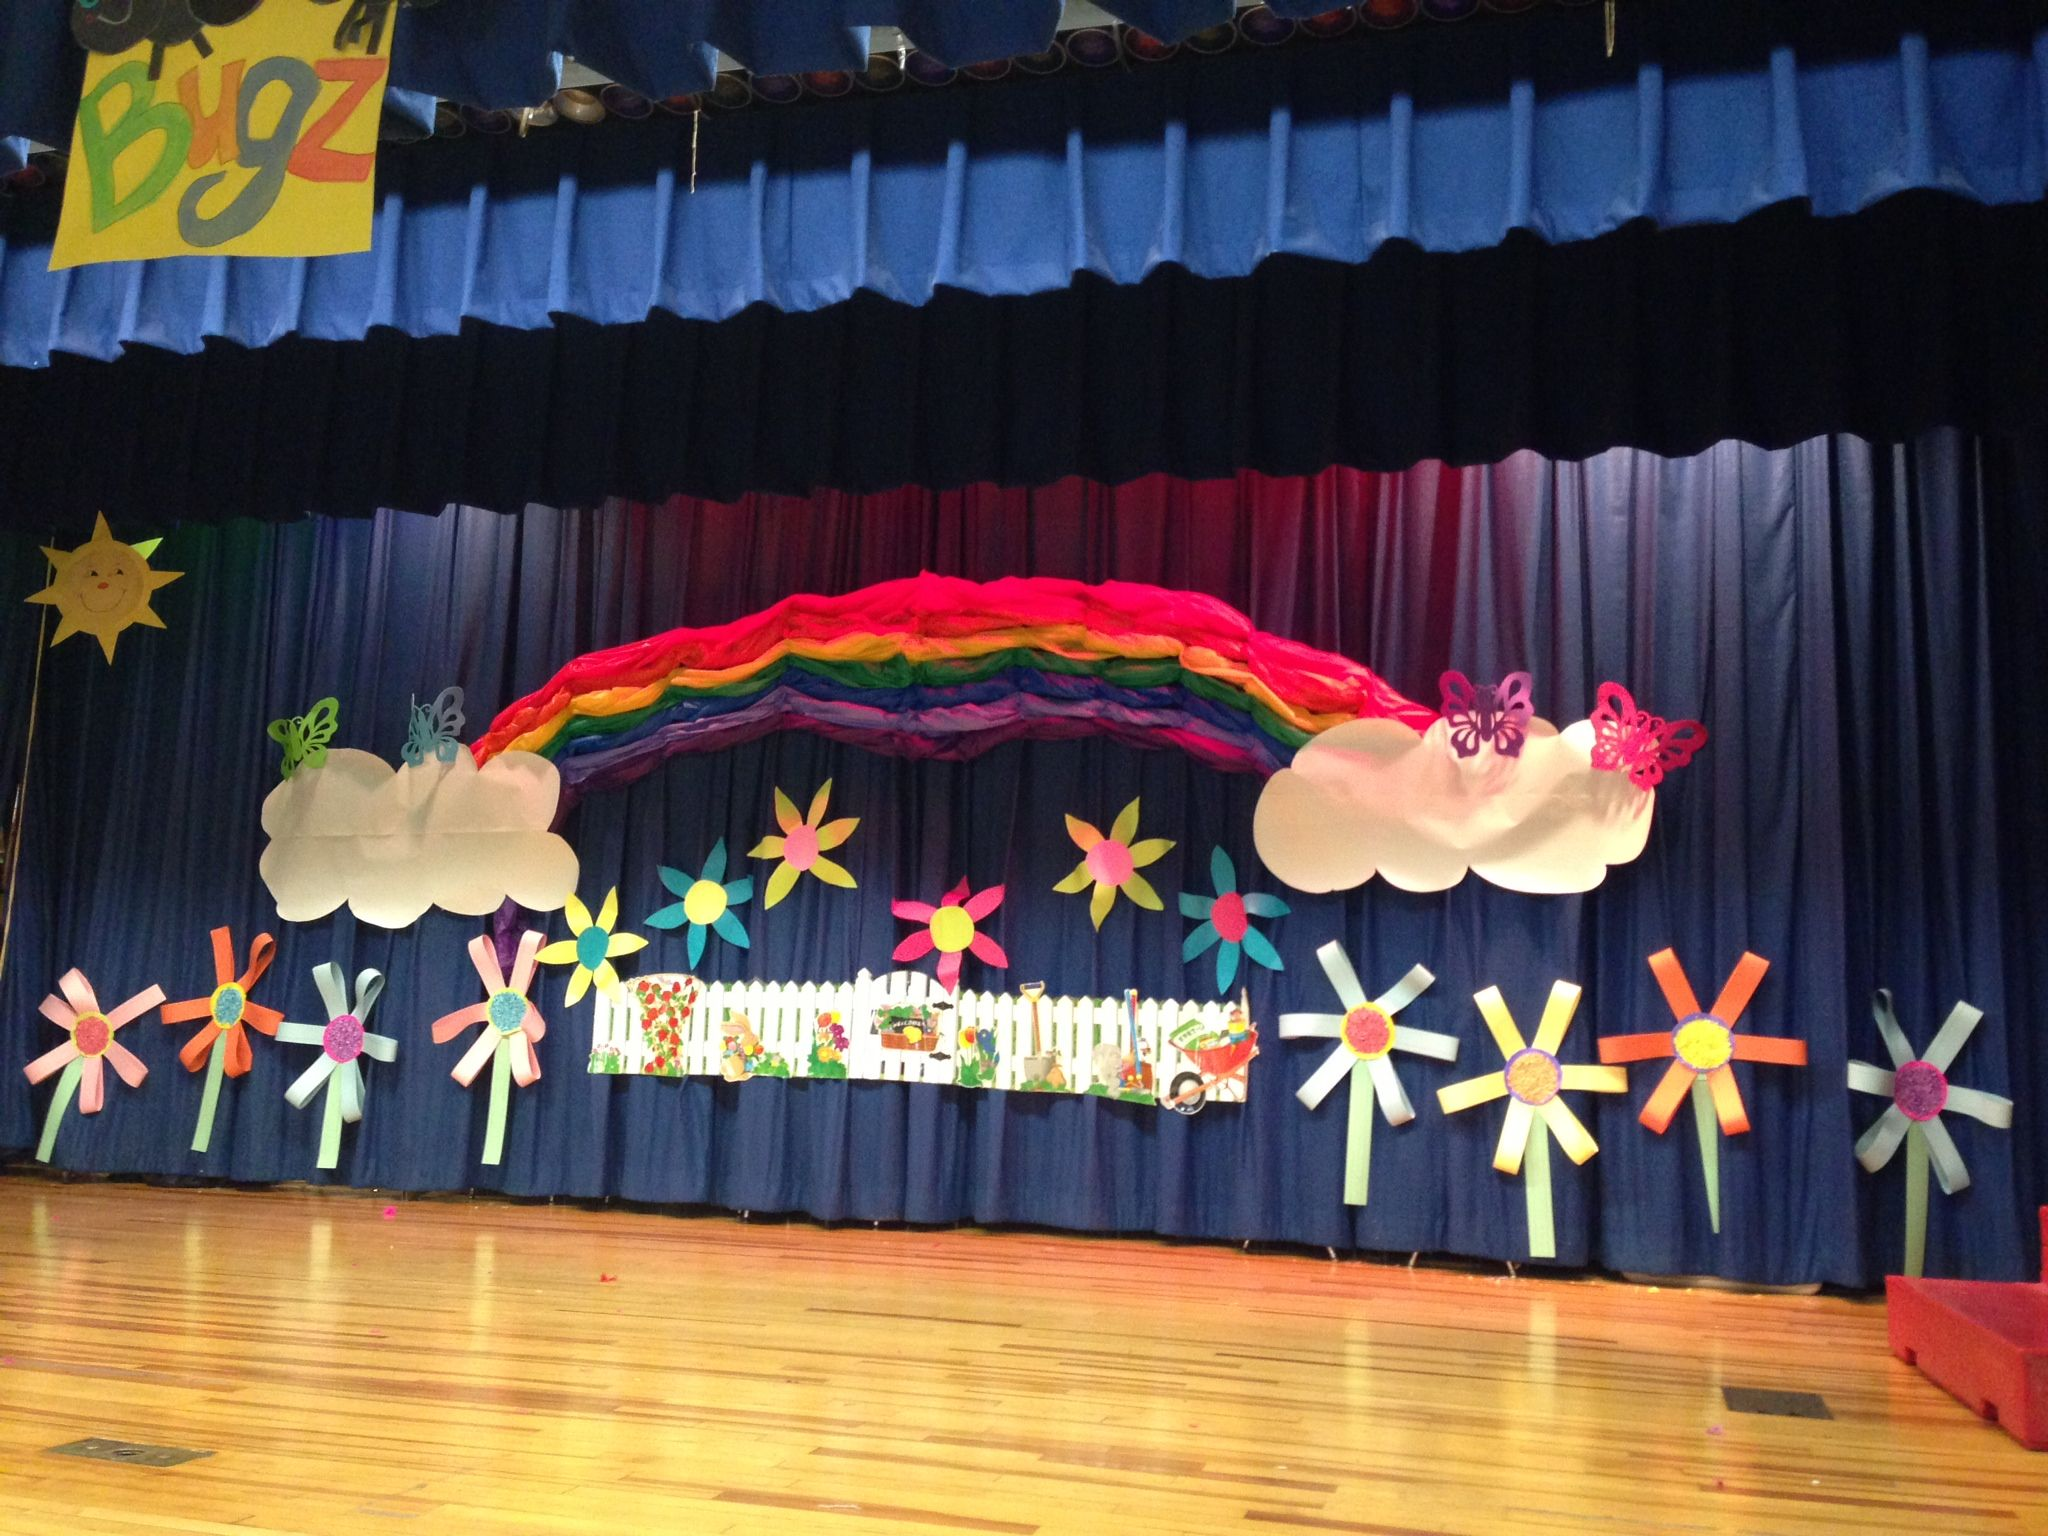 Our decorated stage for our play school stuff for Decoration themes